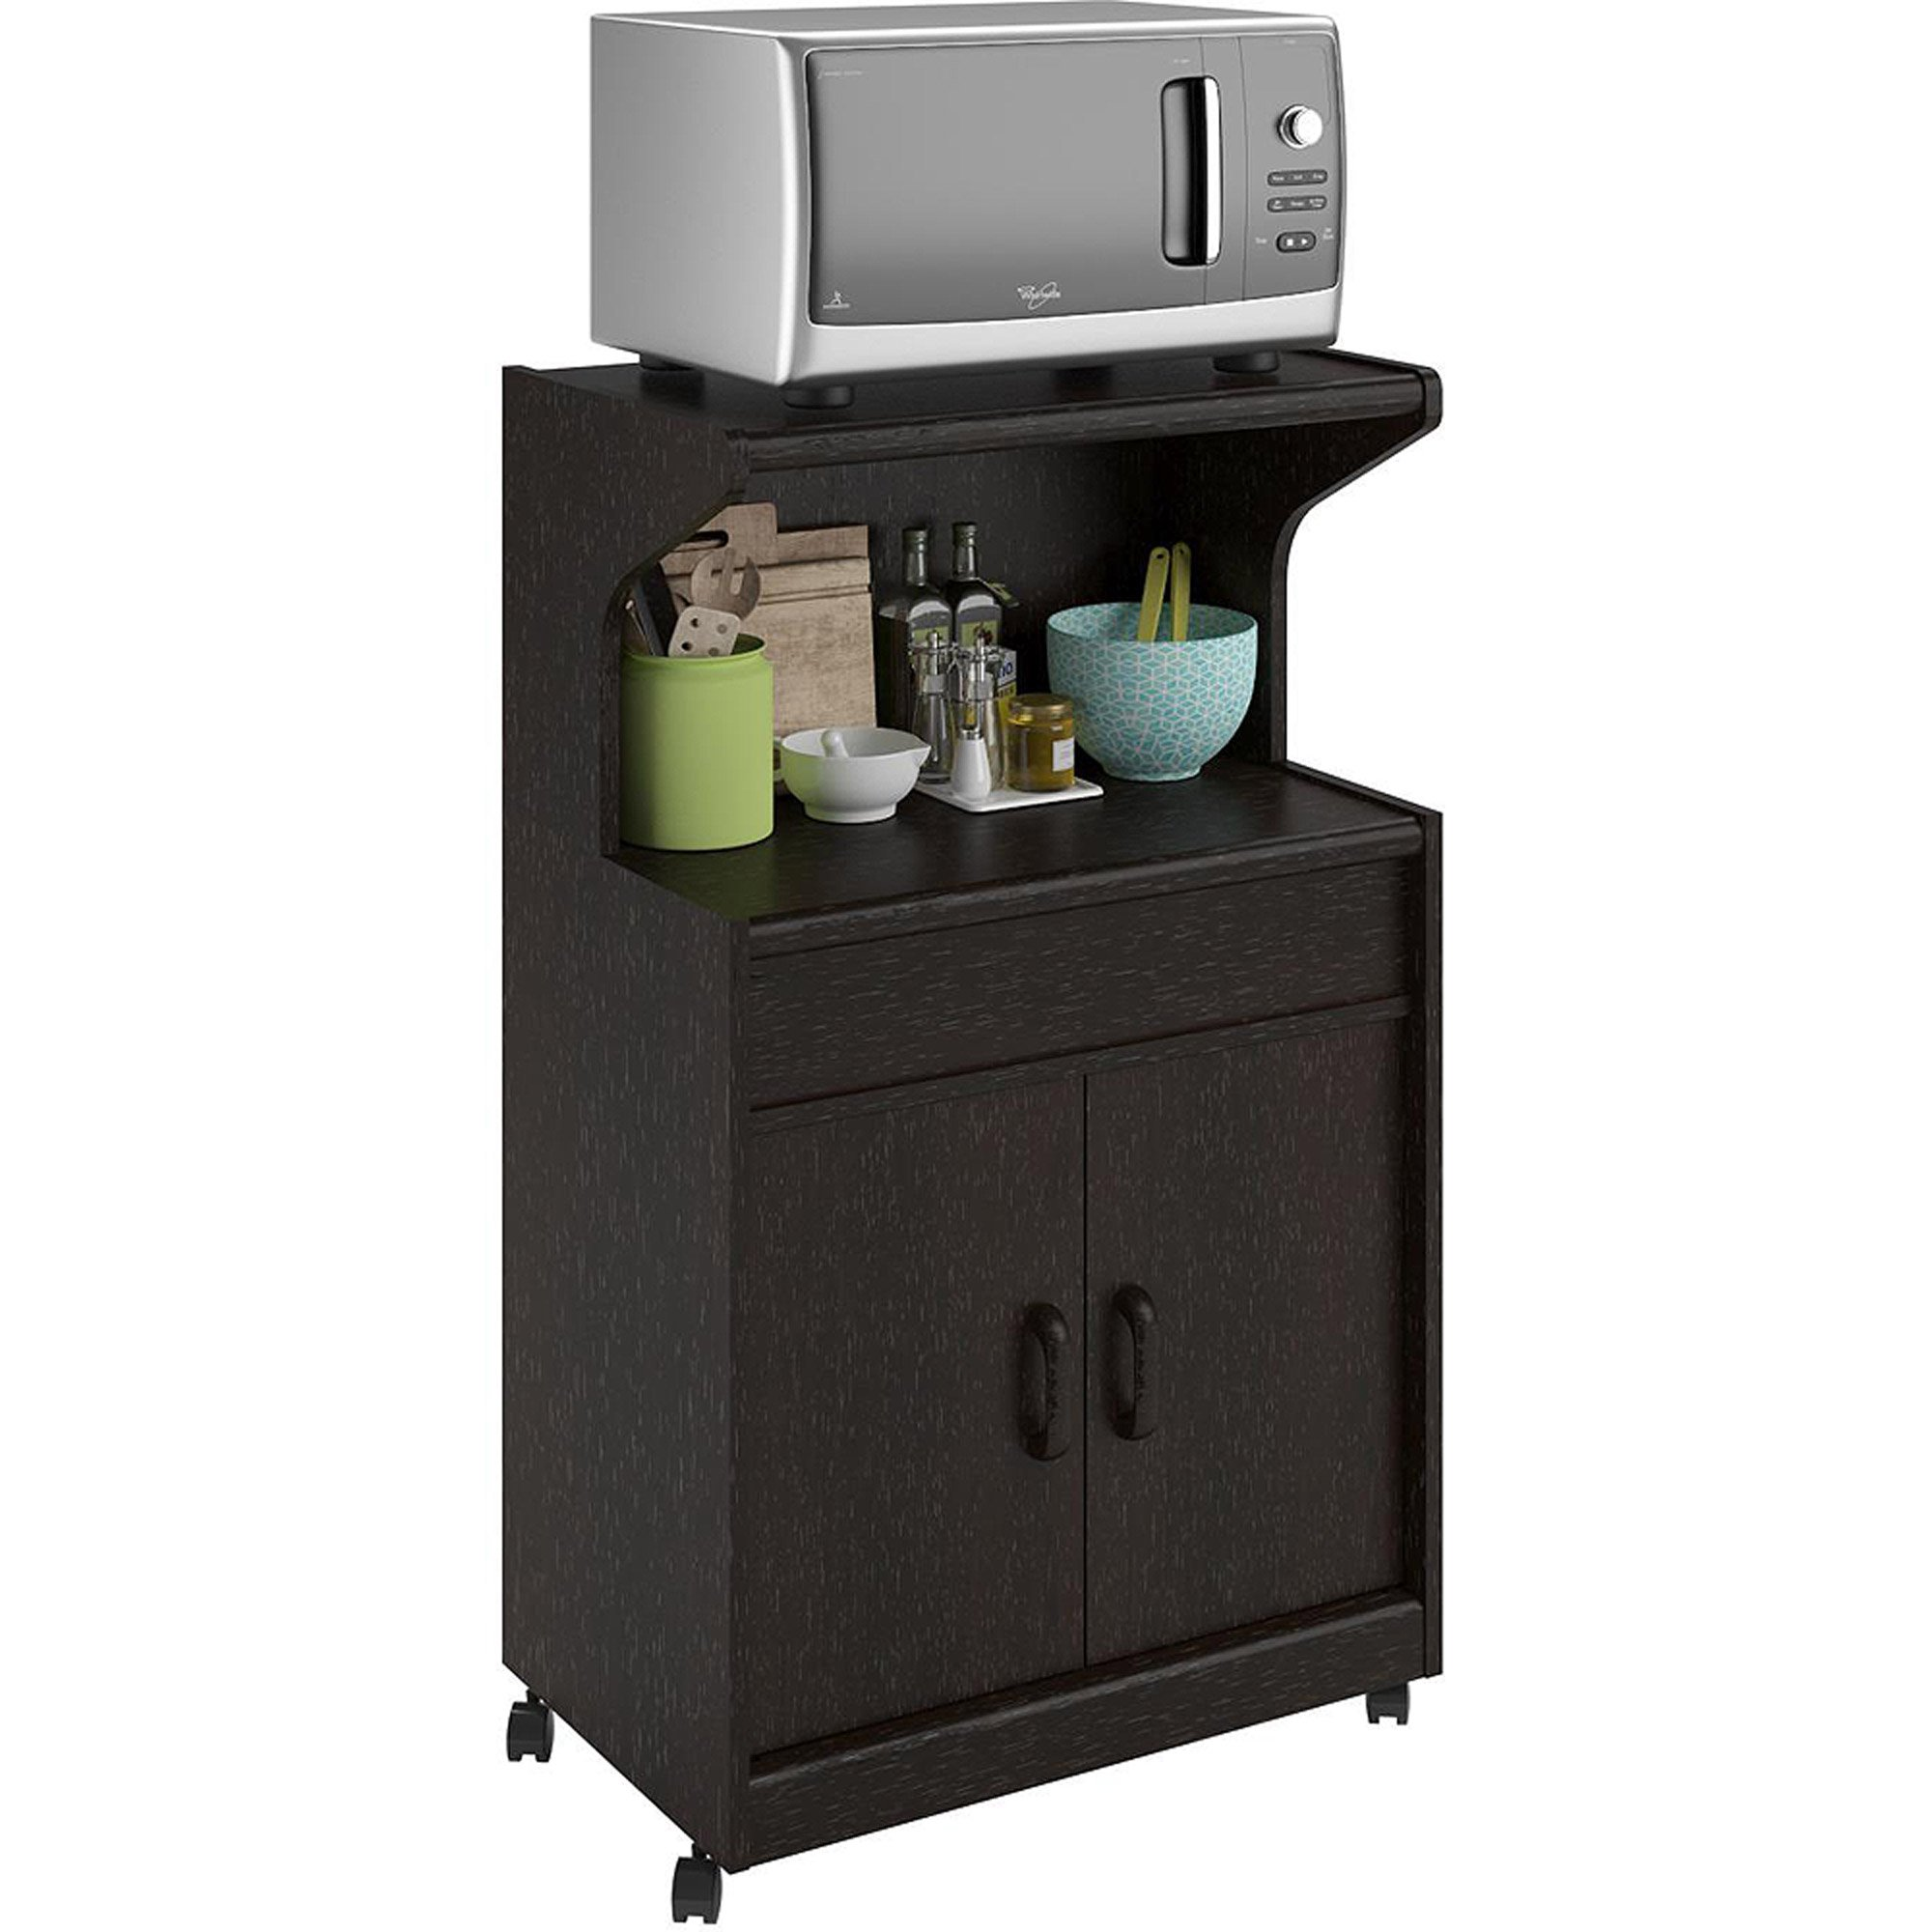 Microwave Cabinet With Shelves, Rolling Kitchen Cabinet, Amble Storage Space Underneath, Casters on the Bottom, Easy Mobility, Convenient Prepping Station, Open Storage + Expert Guide (Espresso)